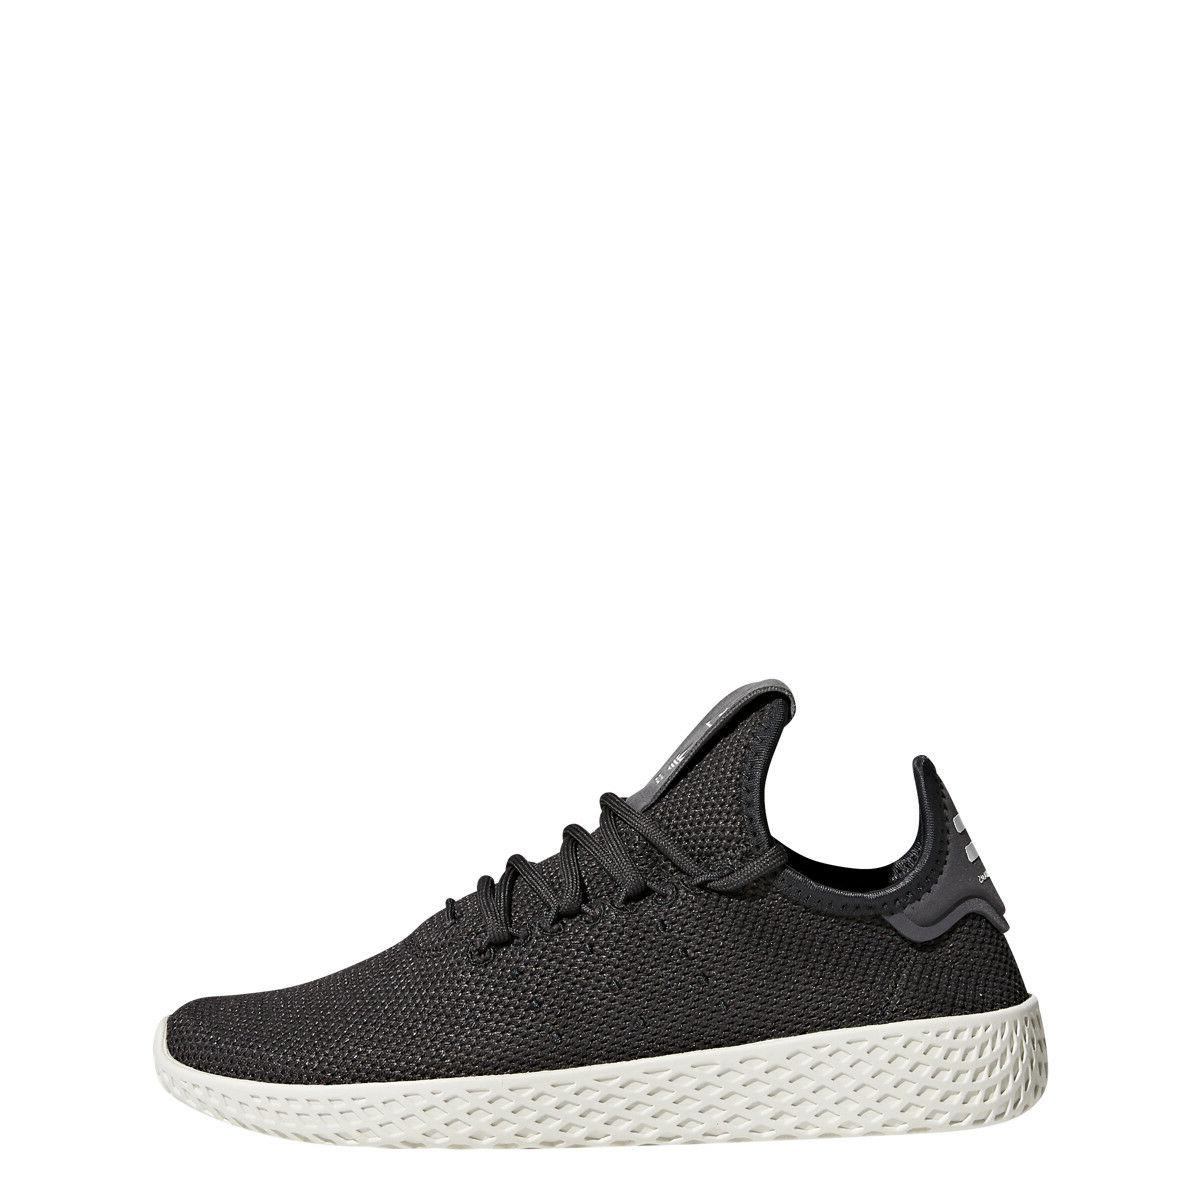 kids originals pharrell williams tennis hu shoes